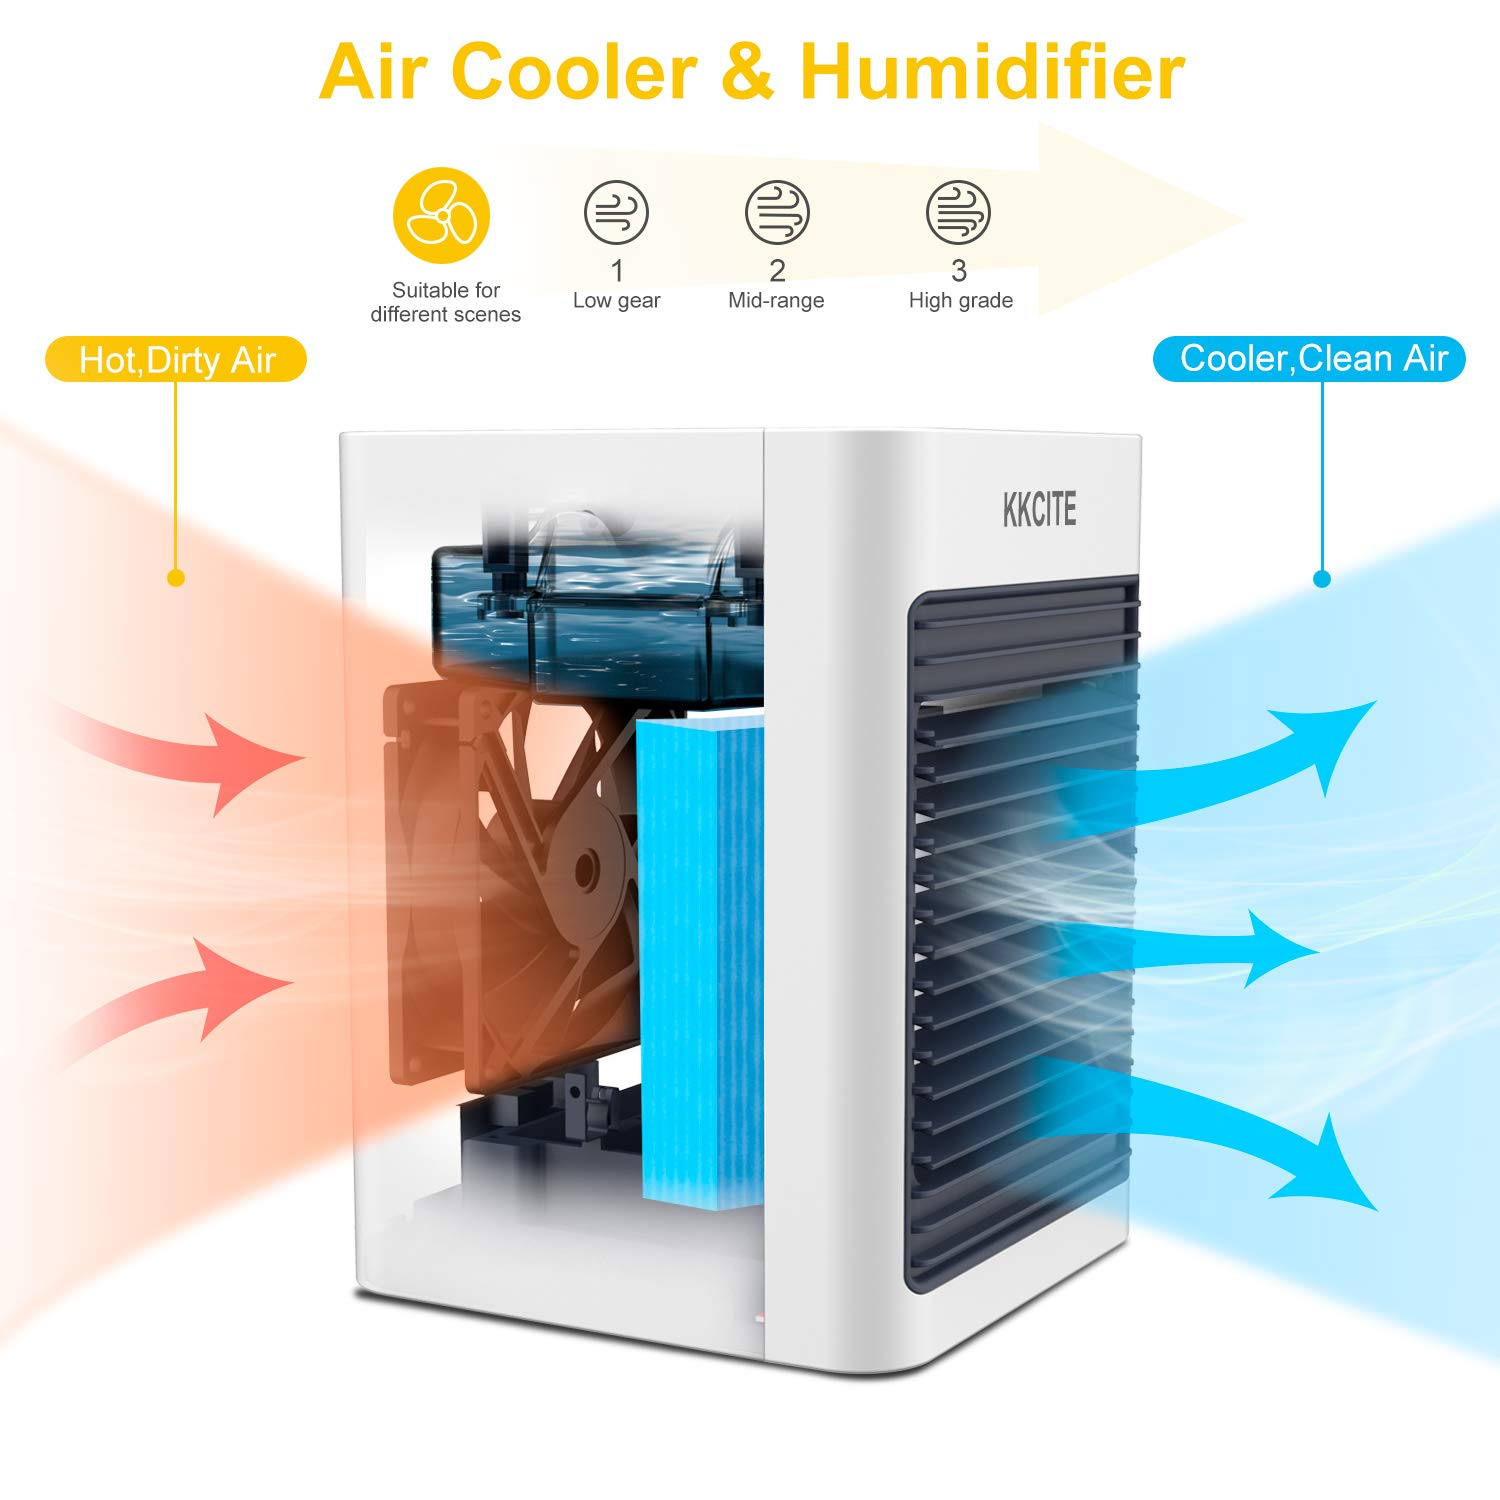 KKCITE Portable Air Cooler,3 in 1 Air Cooler,Humidifier,Purifier,Mini Air Conditioner Fan Noiseless evaporative Cooler Mobile Air Conditioner,Touch Control 3 Speed Fan for Home Office car Outdoor